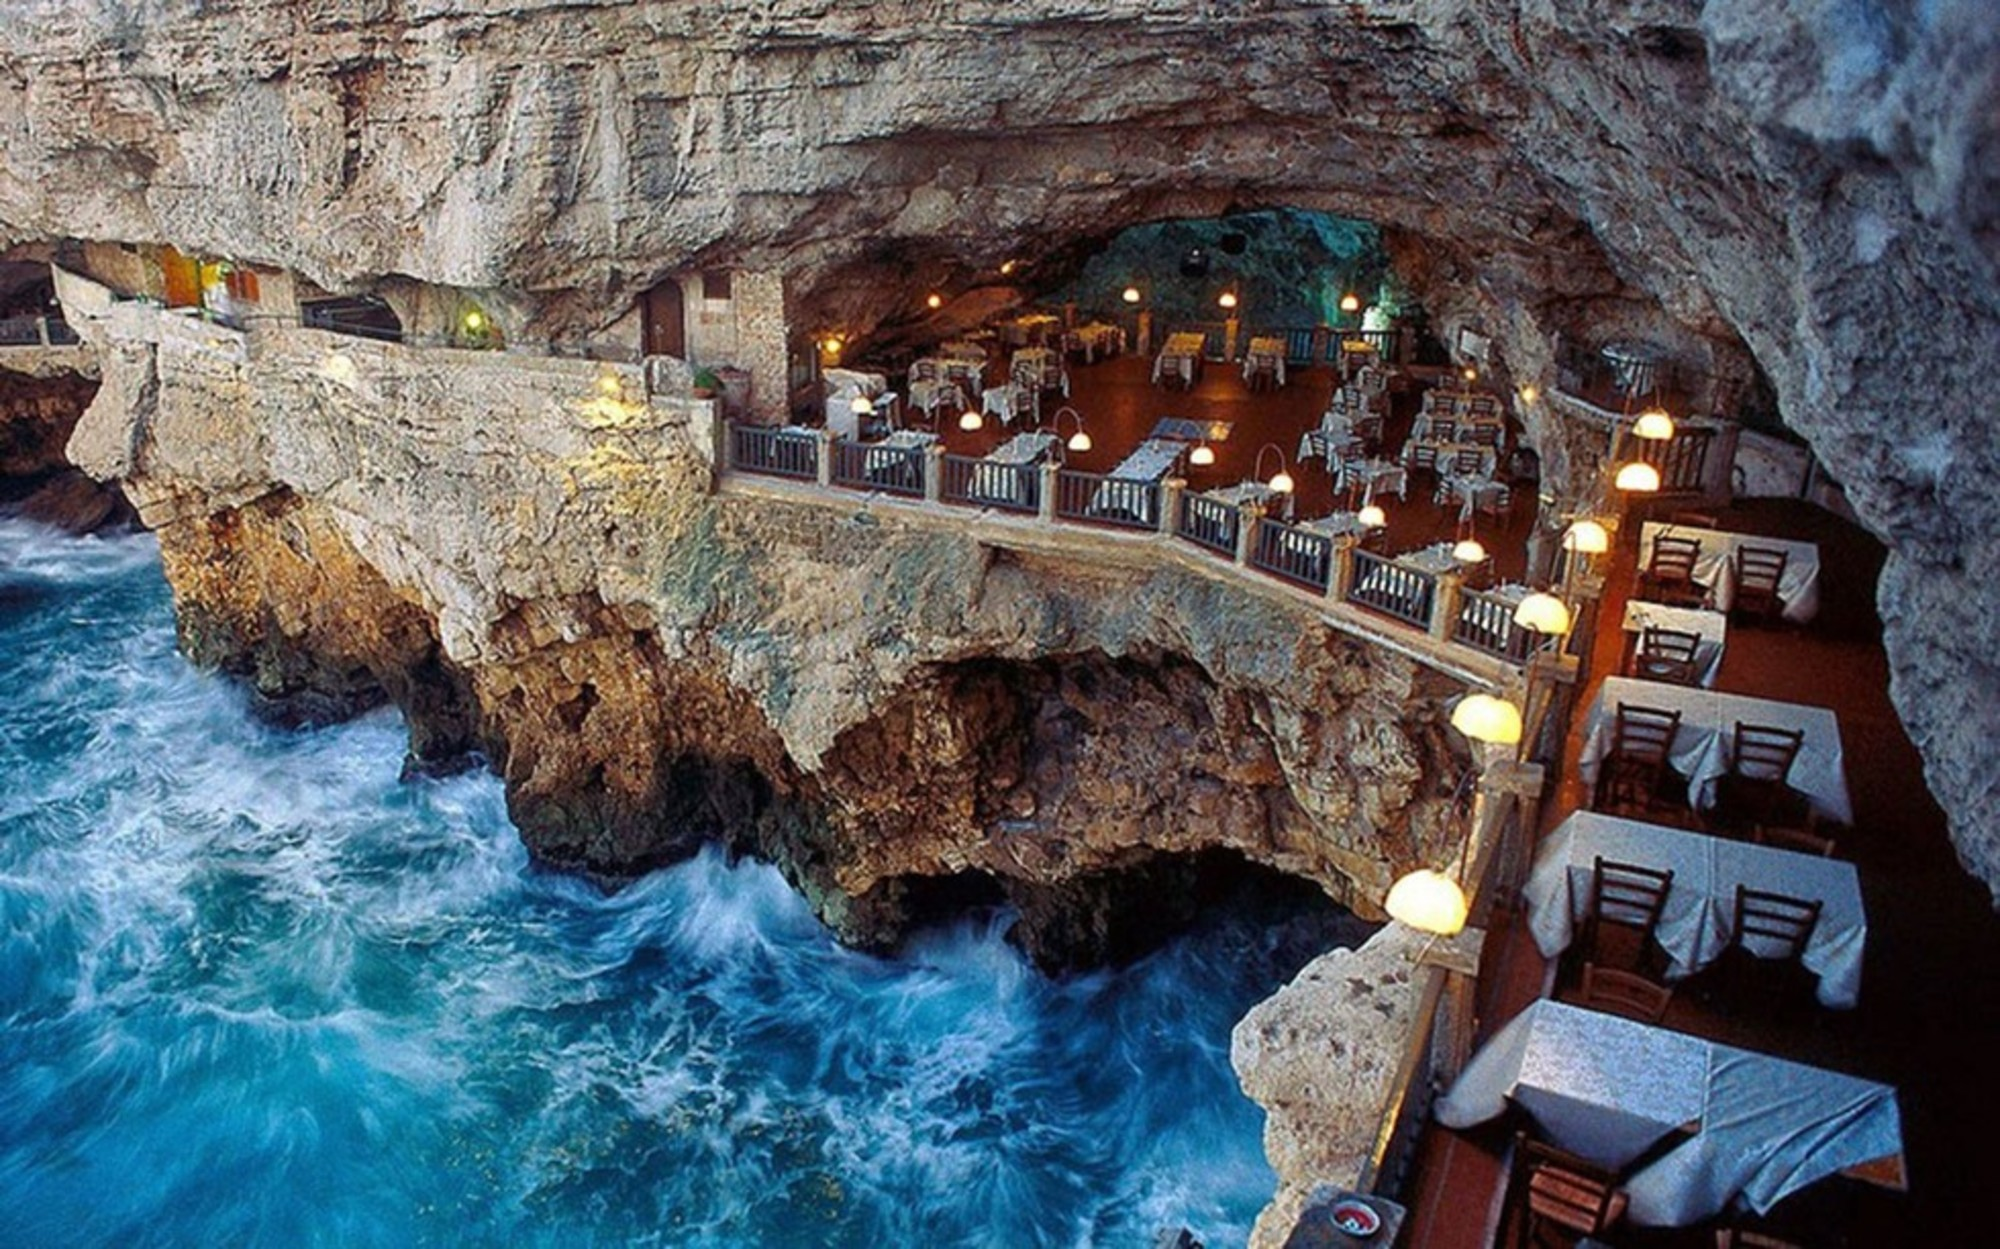 Luxury restaurants: an unforgettable experience inside a cave luxury decoration ideas Luxury Decoration Ideas That Are Already Trending for 2017 Luxury restaurants an unforgettable experience inside a cave luxury decoration ideas Luxury Decoration Ideas That Are Already Trending for 2017 Luxury restaurants an unforgettable experience inside a cave